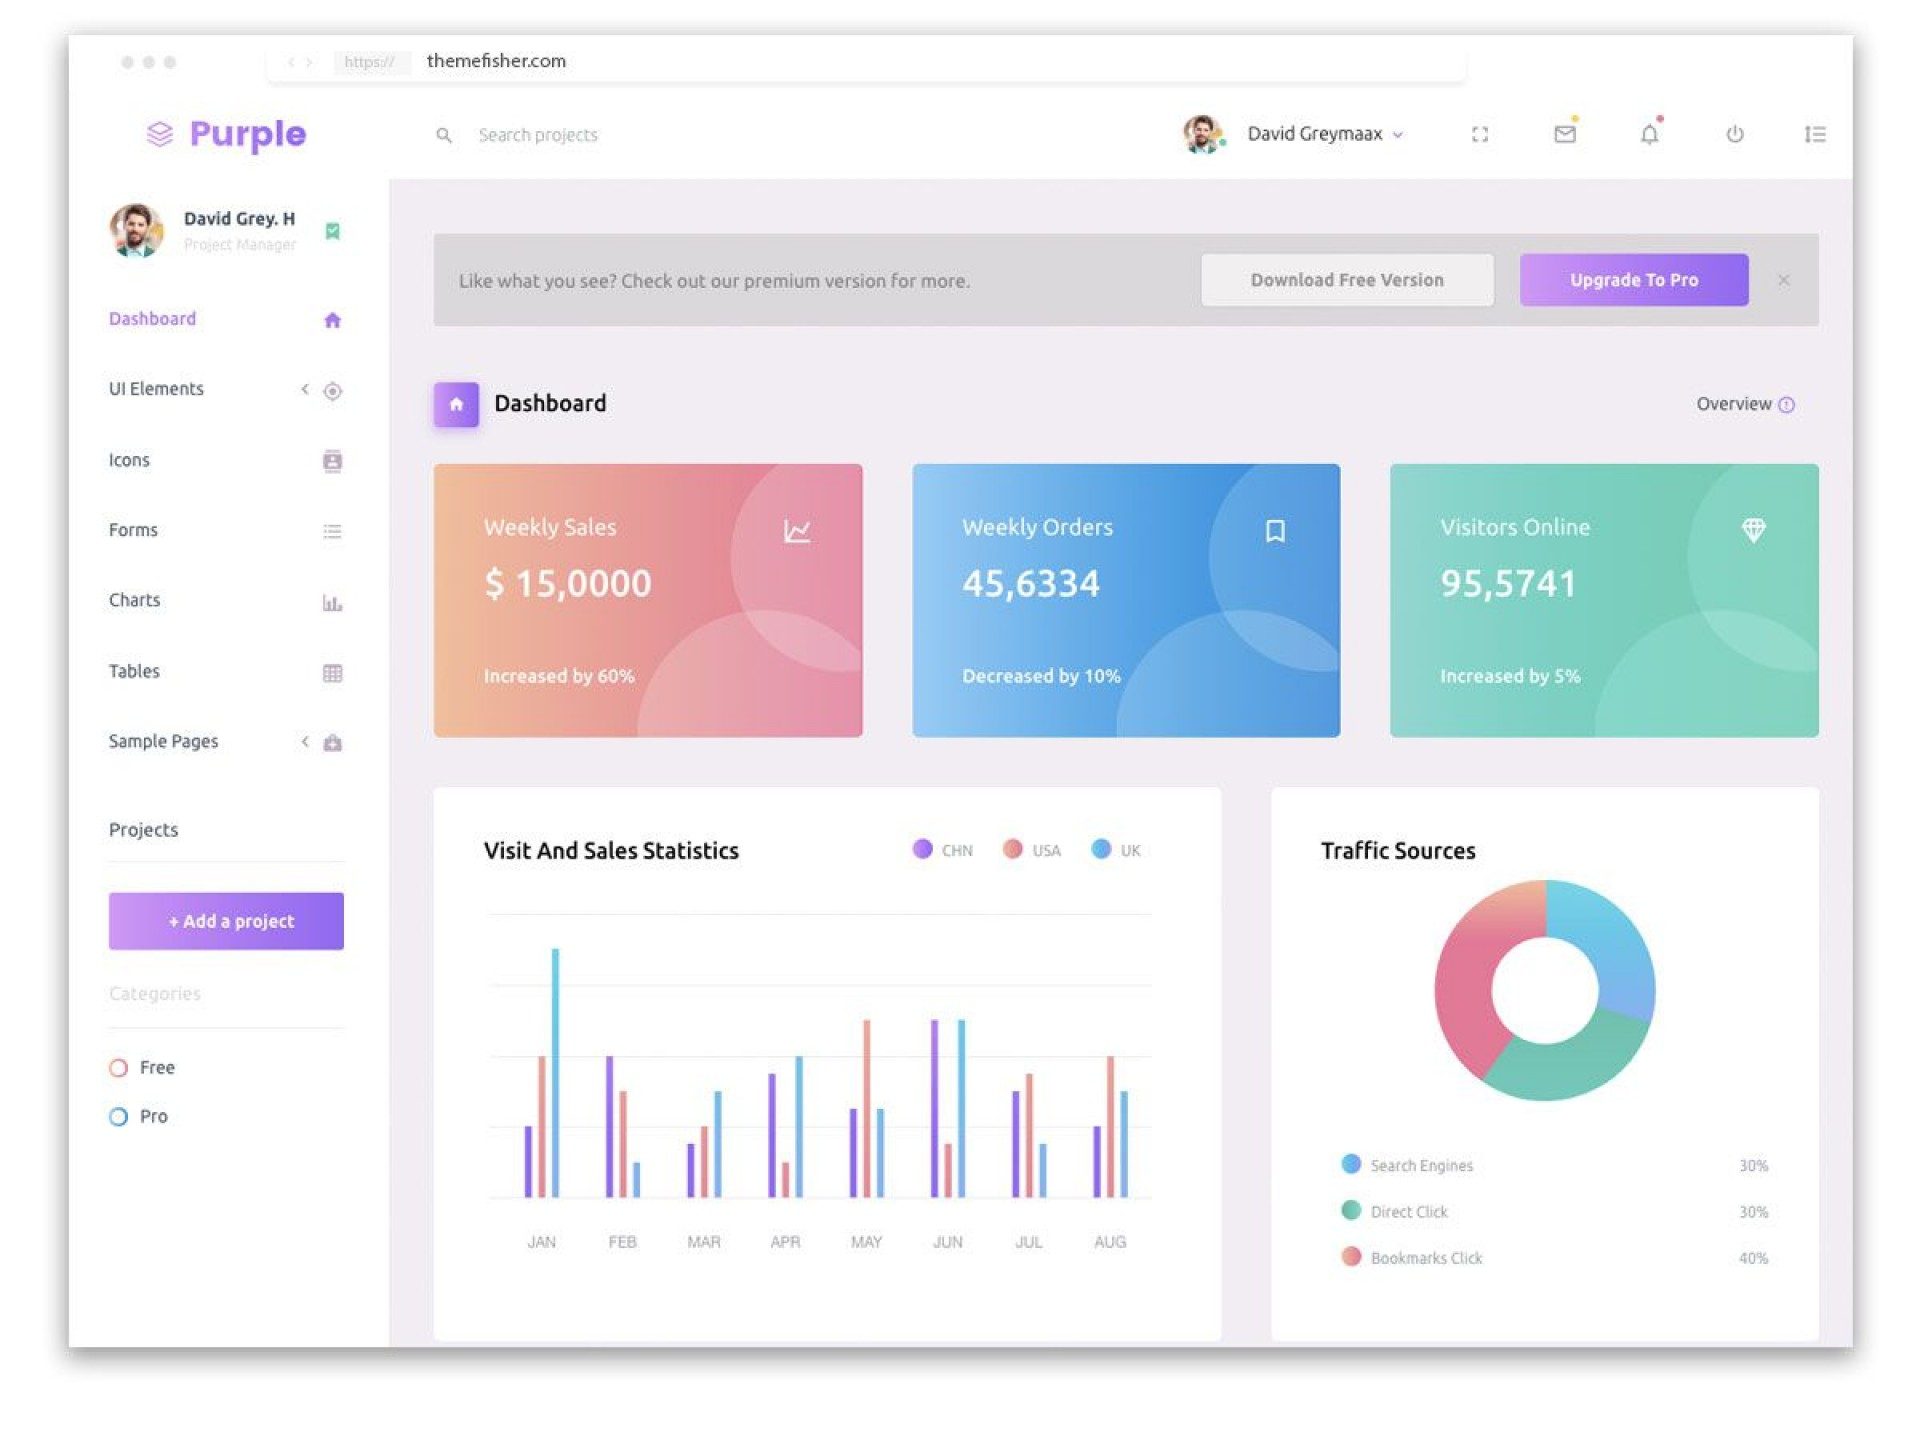 009 Exceptional Project Management Bootstrap Template Free Download Concept 1920